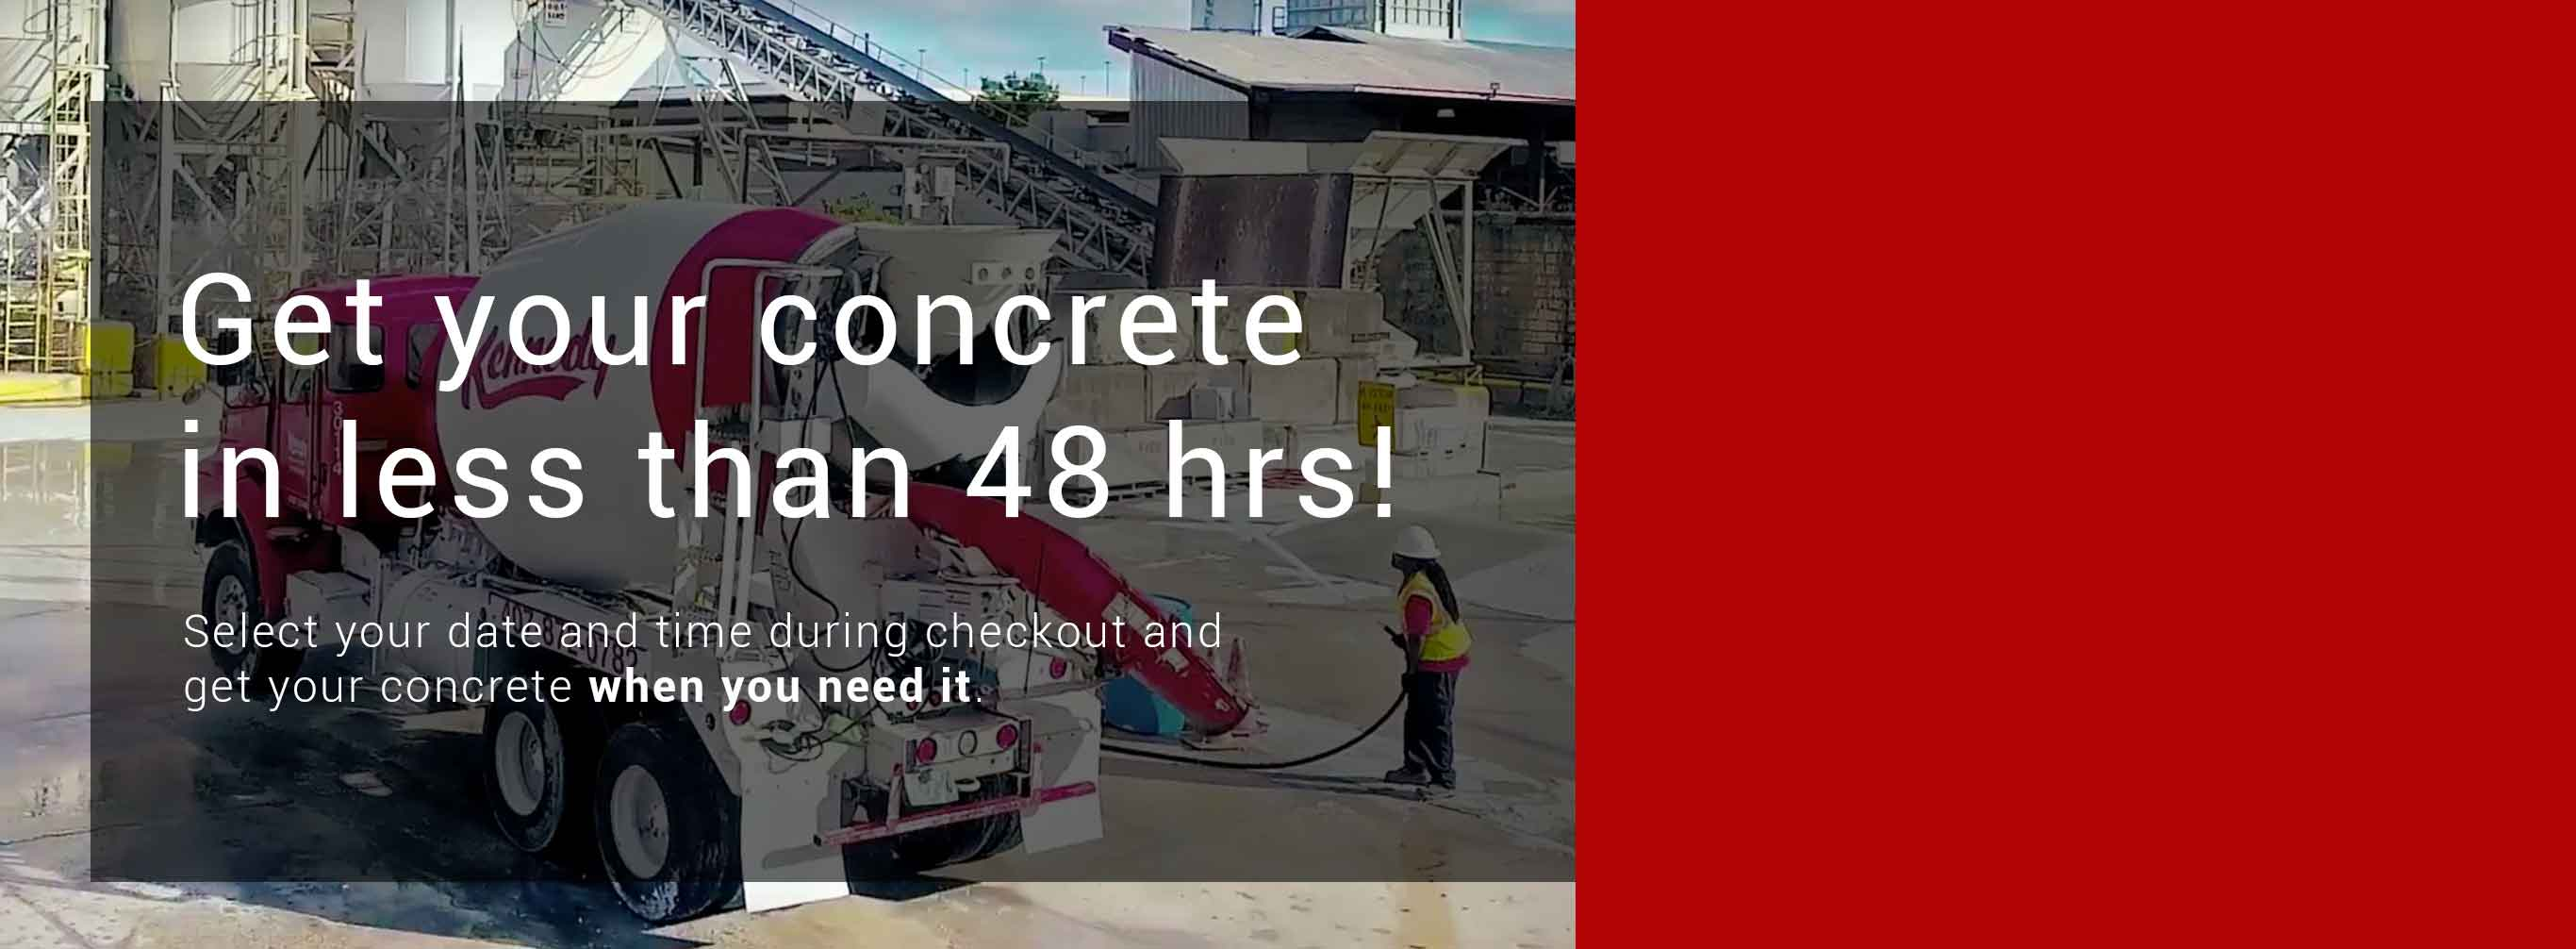 Get your concrete in less than 48 hrs!